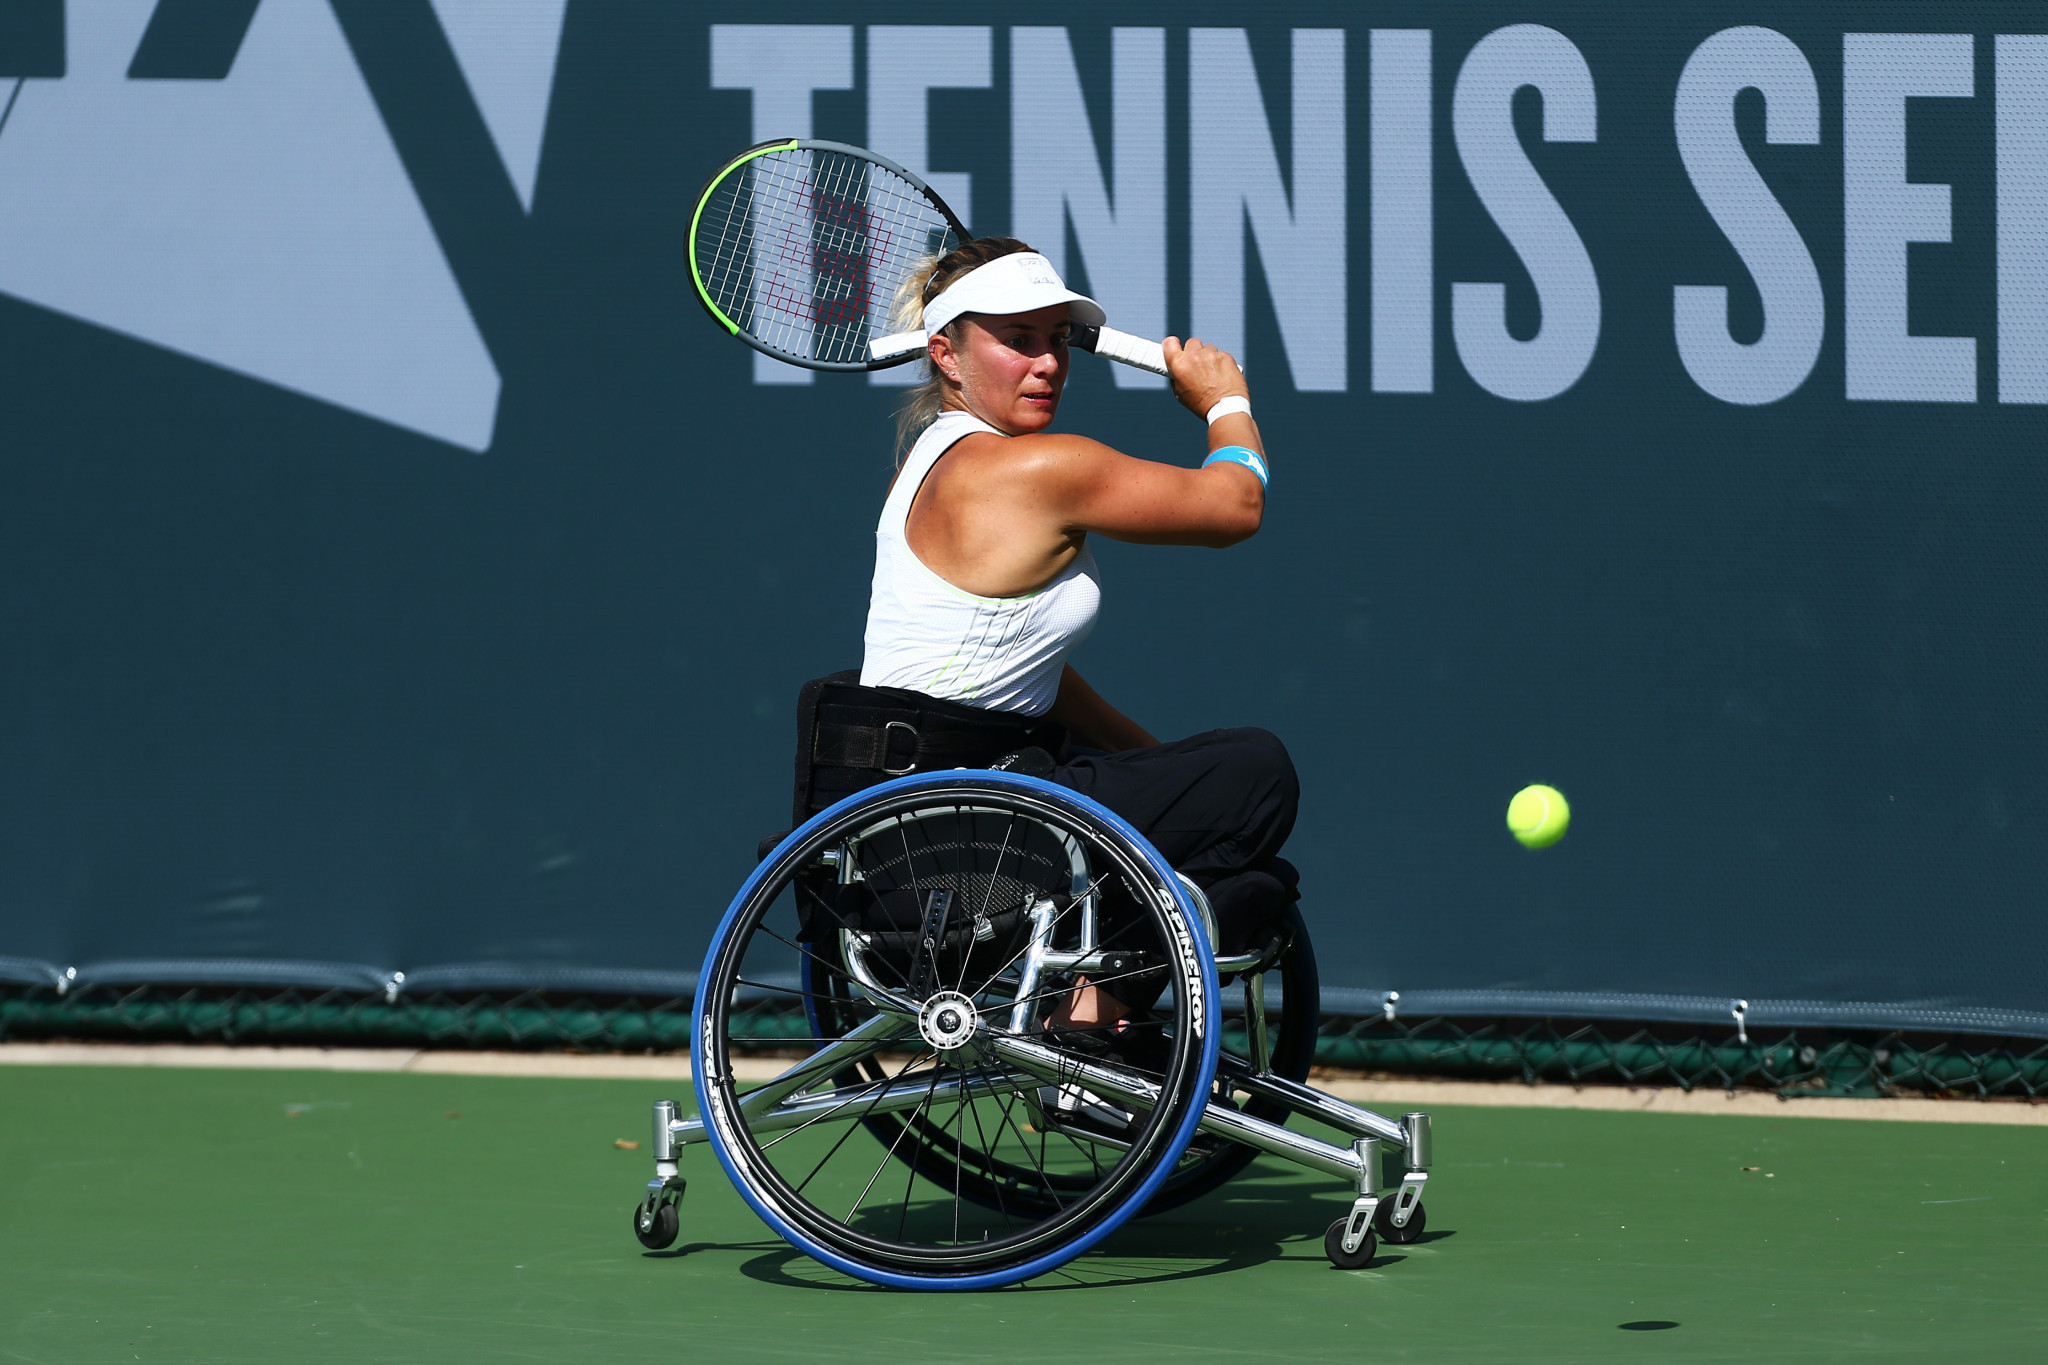 Britain's Lucy Shuker is set to serve another two-year term after joining the Wheelchair Tennis Player Council when it was formed in 2018 ©Getty Images